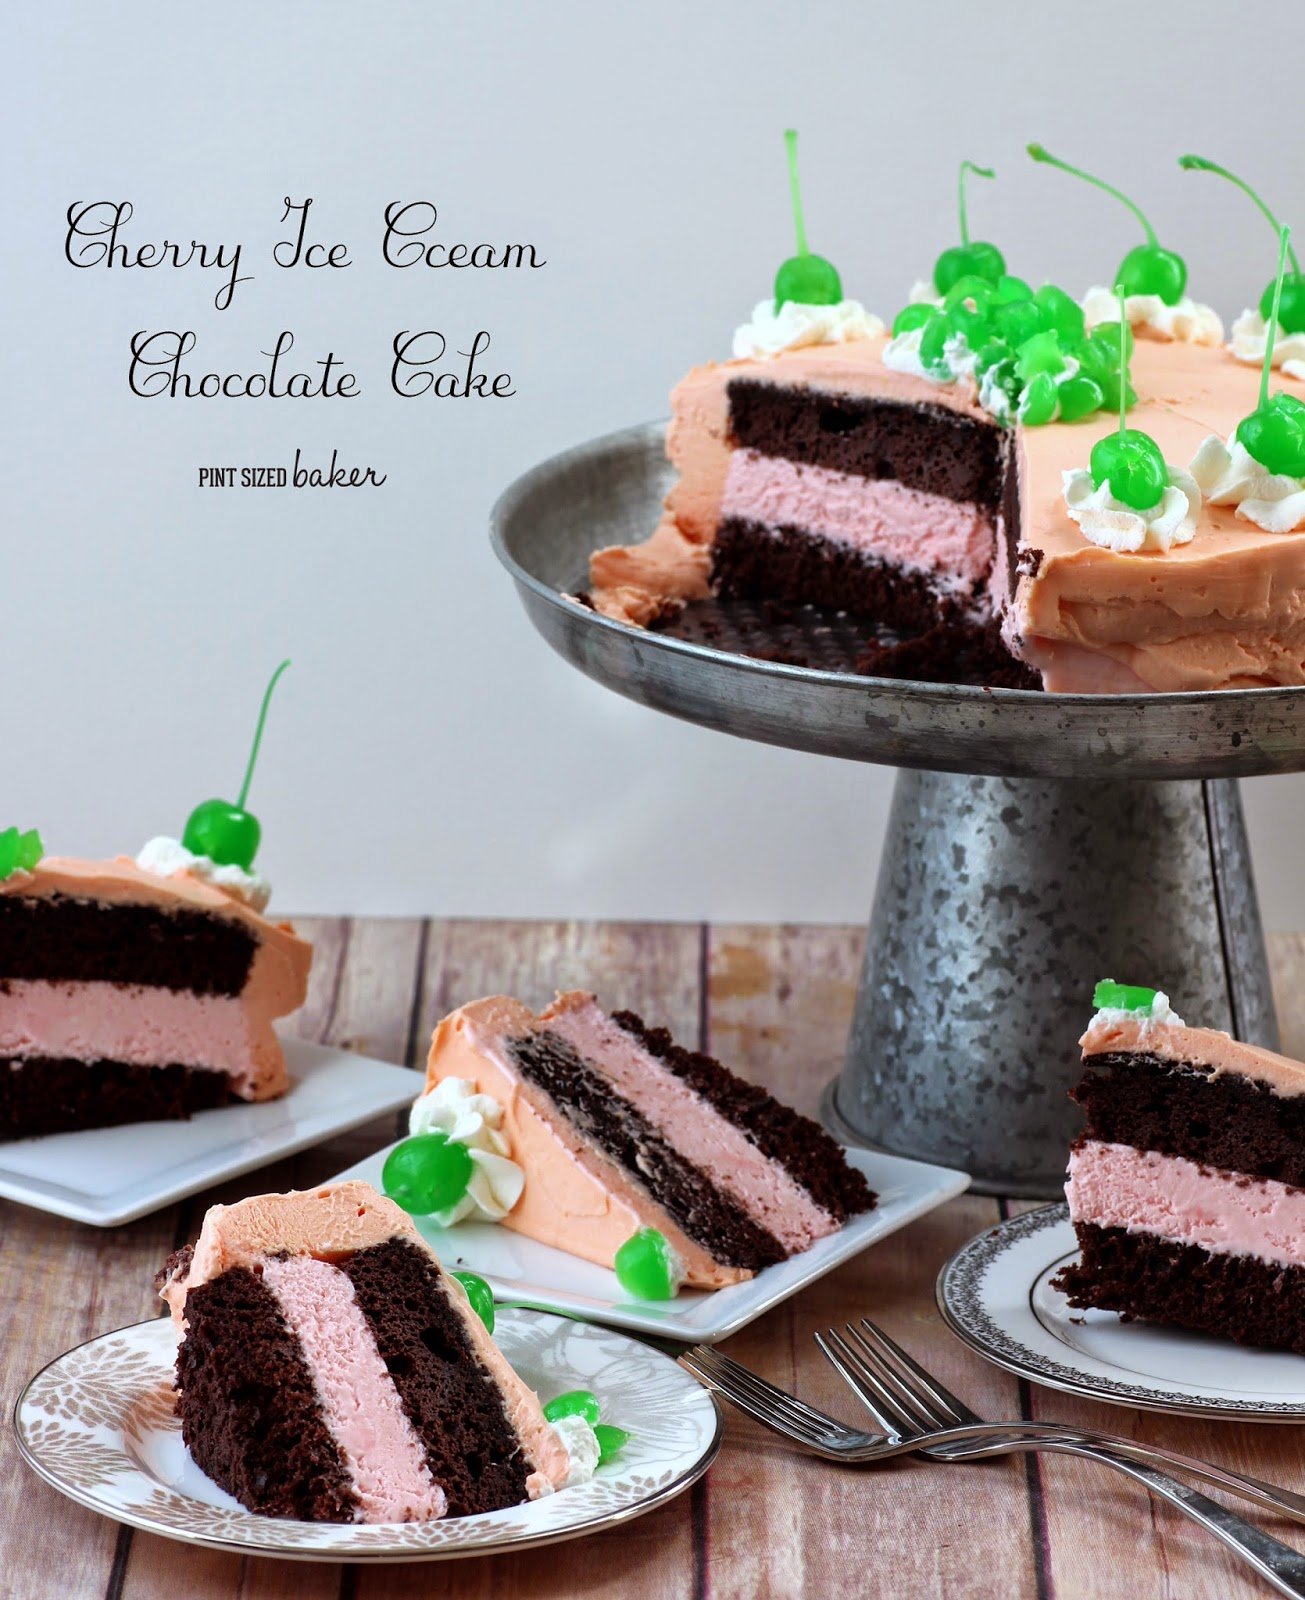 Cherry Ice Cream and Chocolate Cake with Cherry Mousse Frosting. A Delicious Spring Cake!